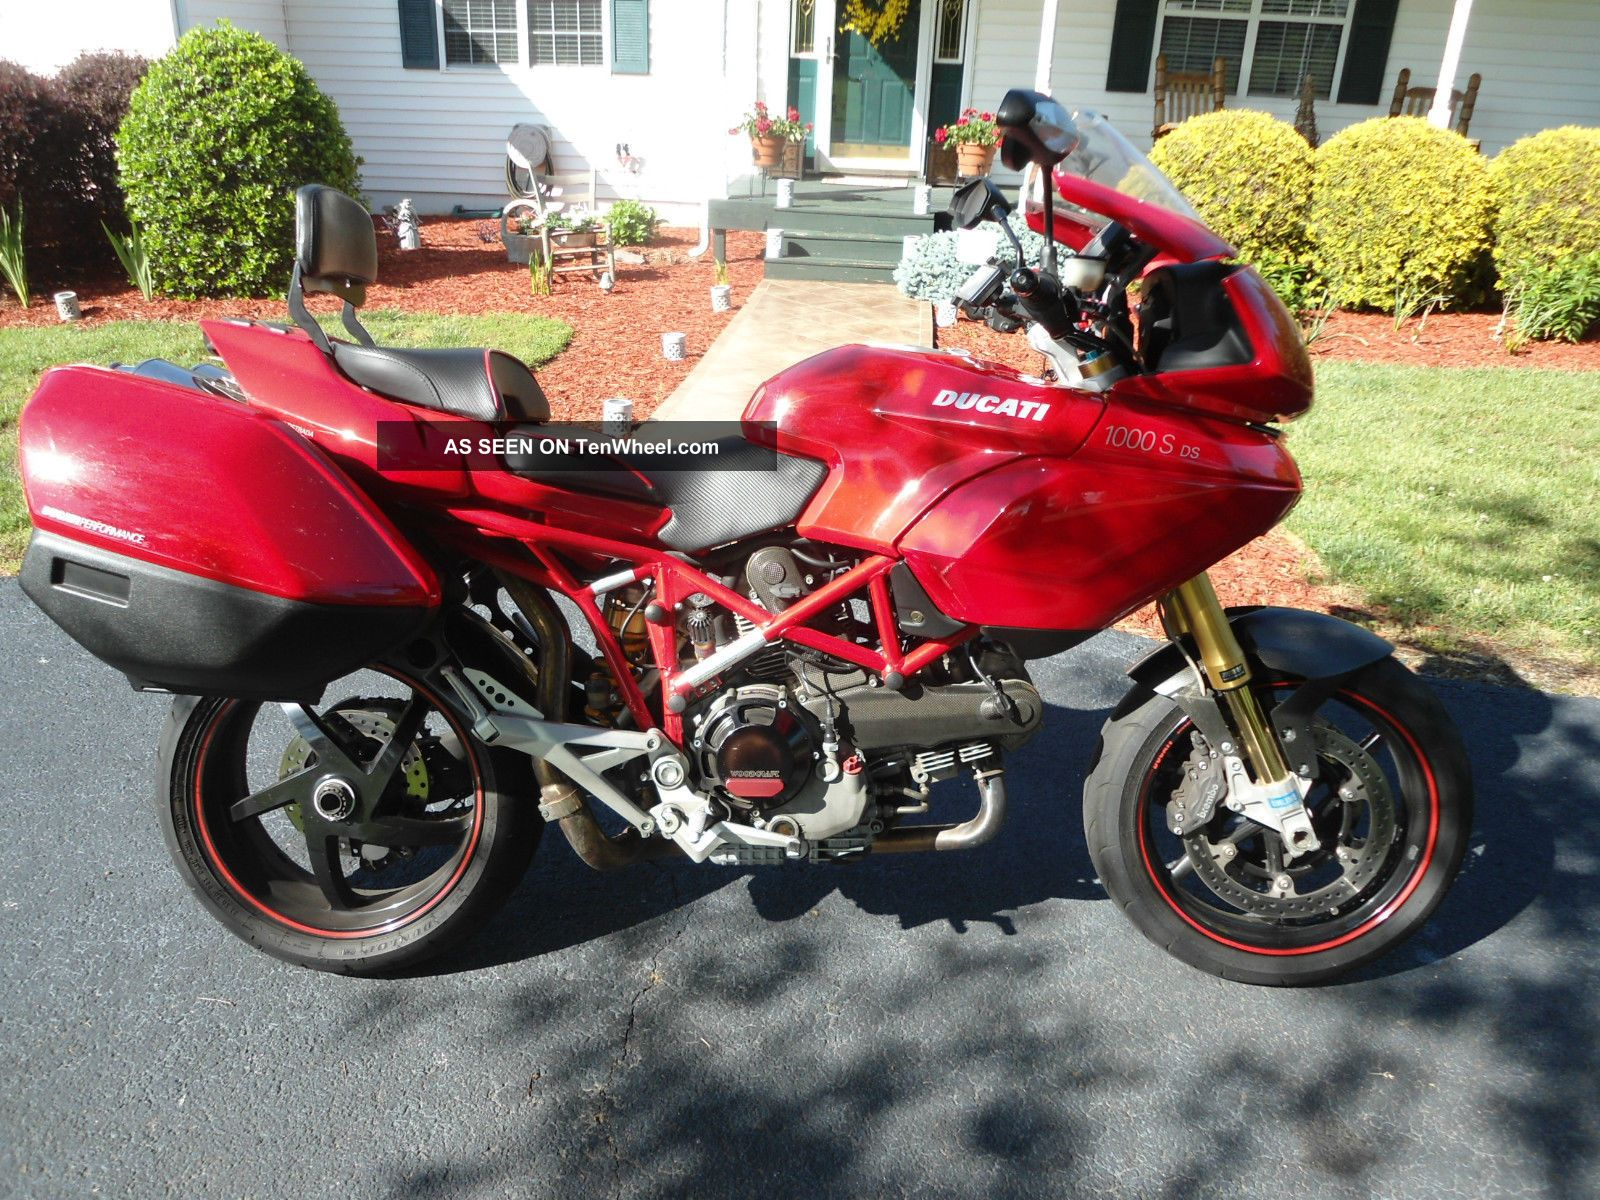 2005 ducati multistrada 1000 ds s model. Black Bedroom Furniture Sets. Home Design Ideas